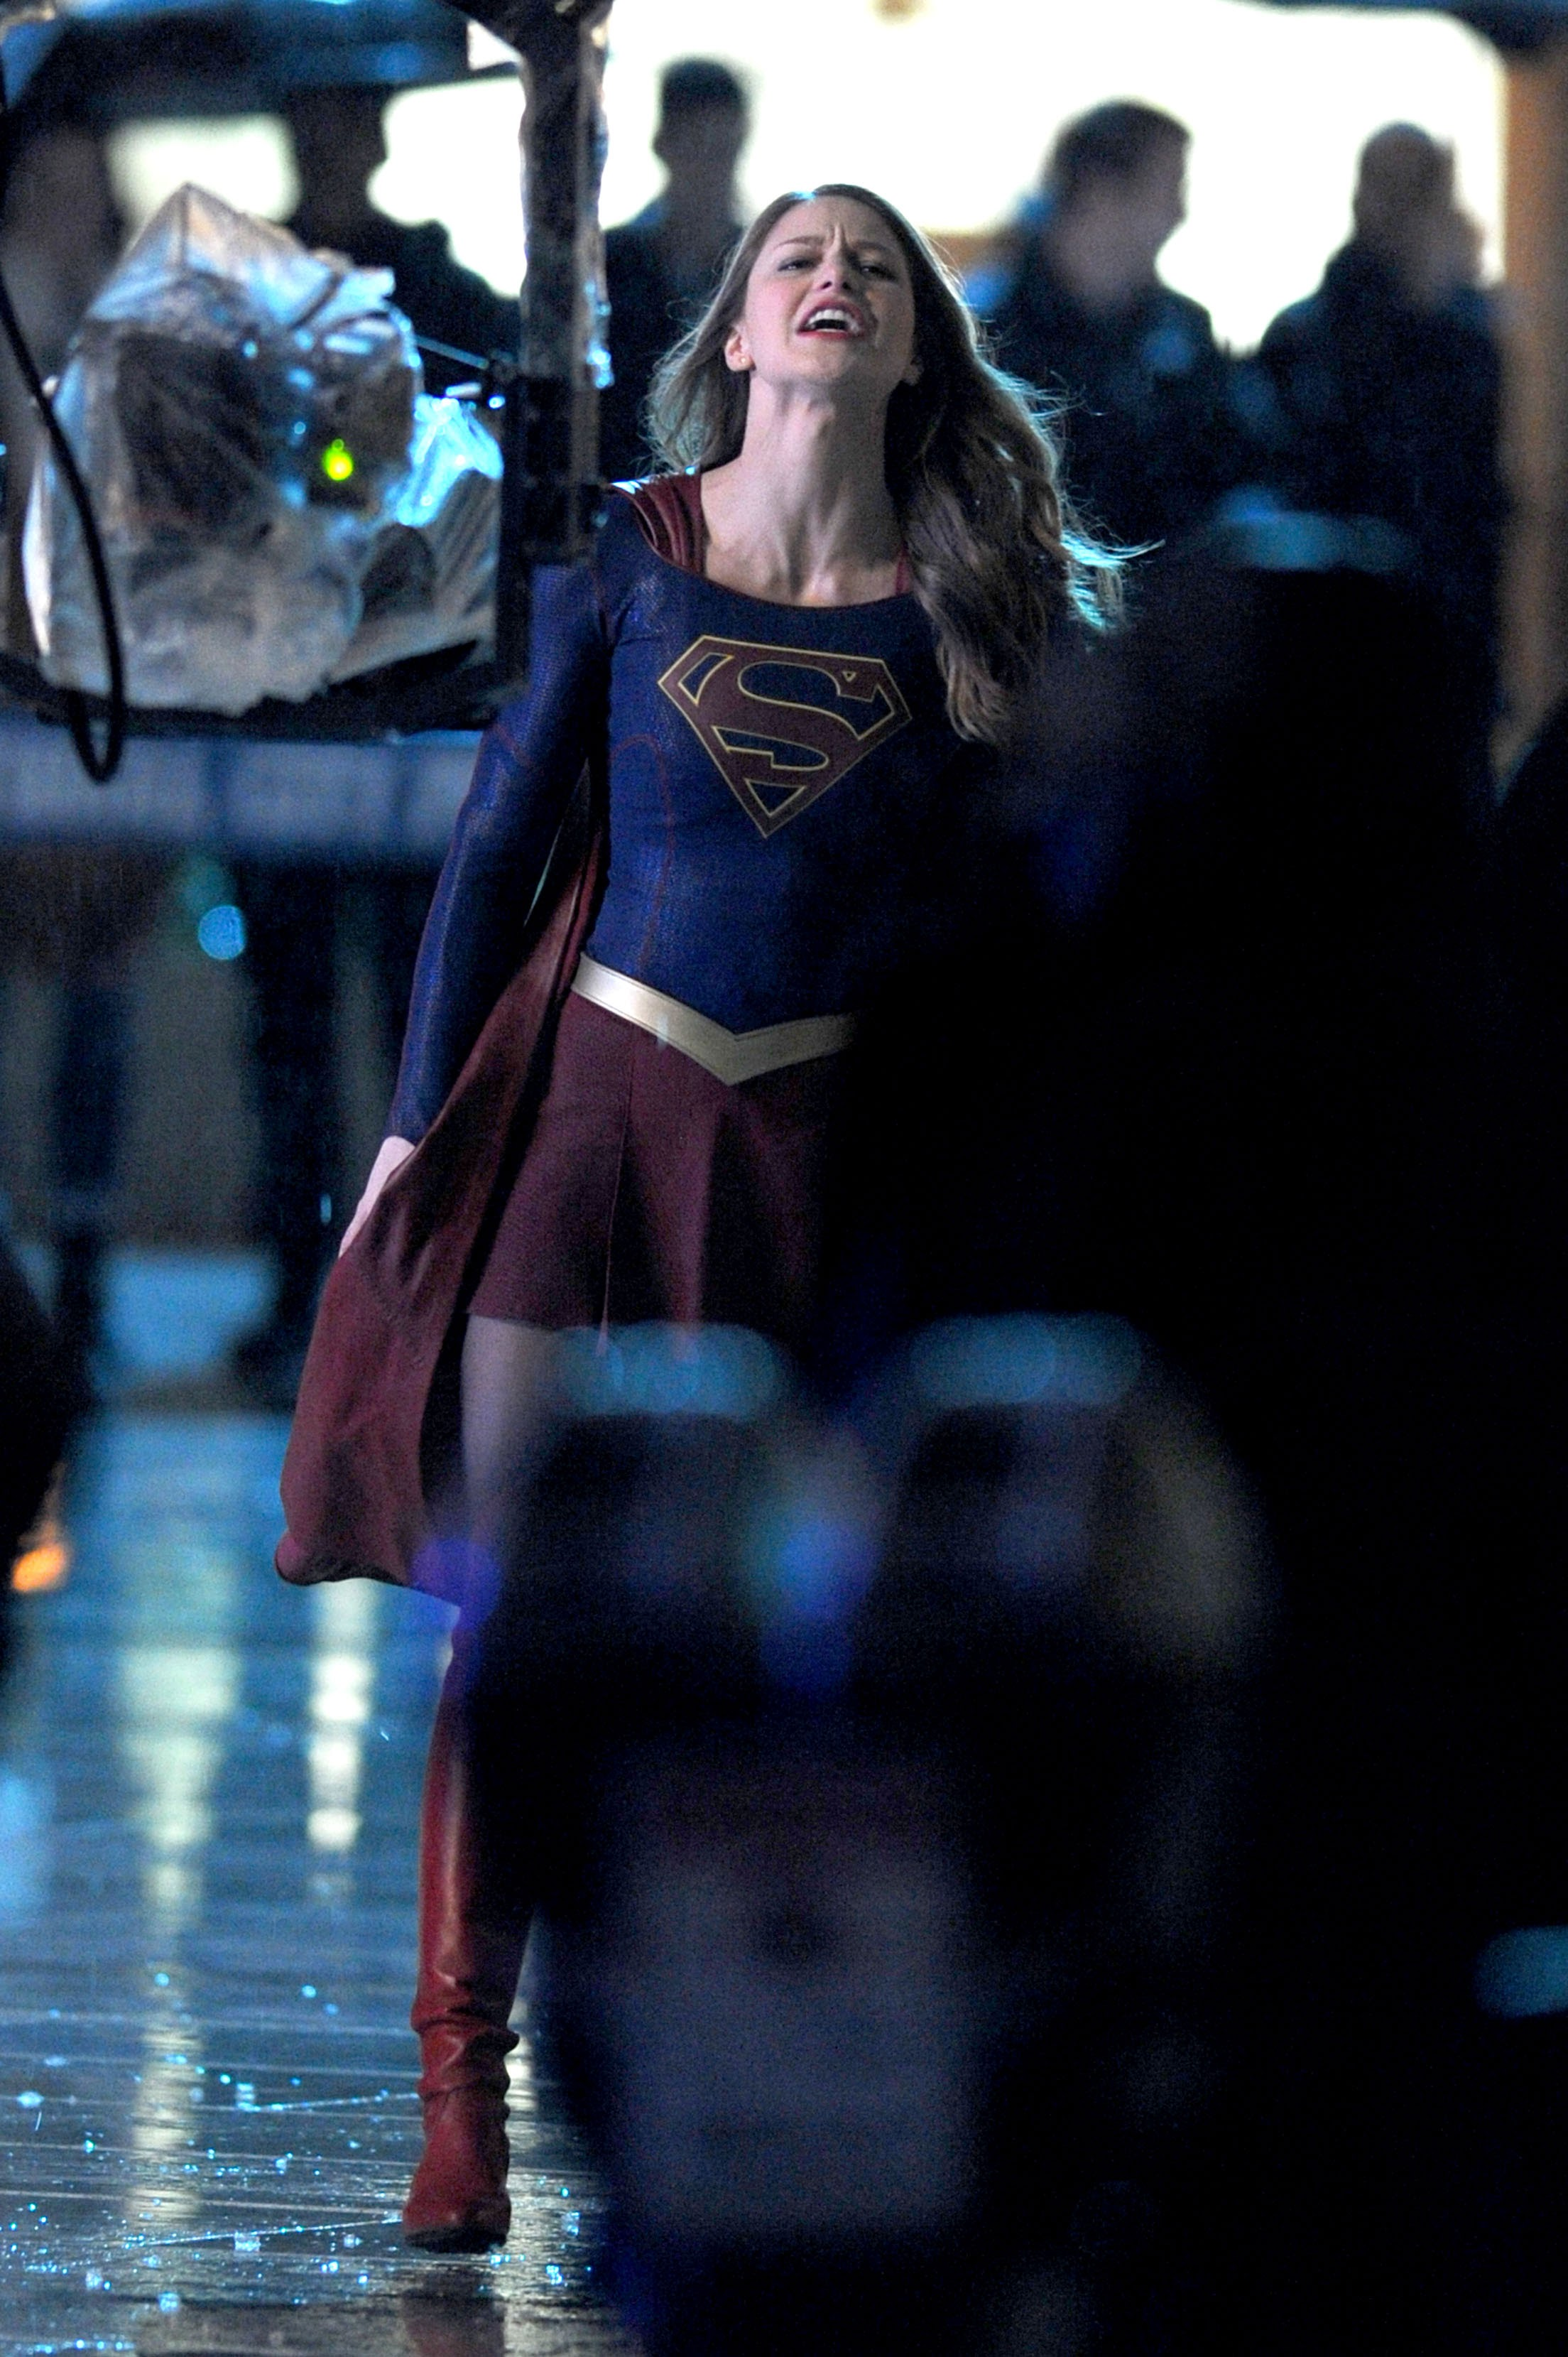 Melissa Benoist the Supergirl caught in cold rain falls in the night time season 2 location